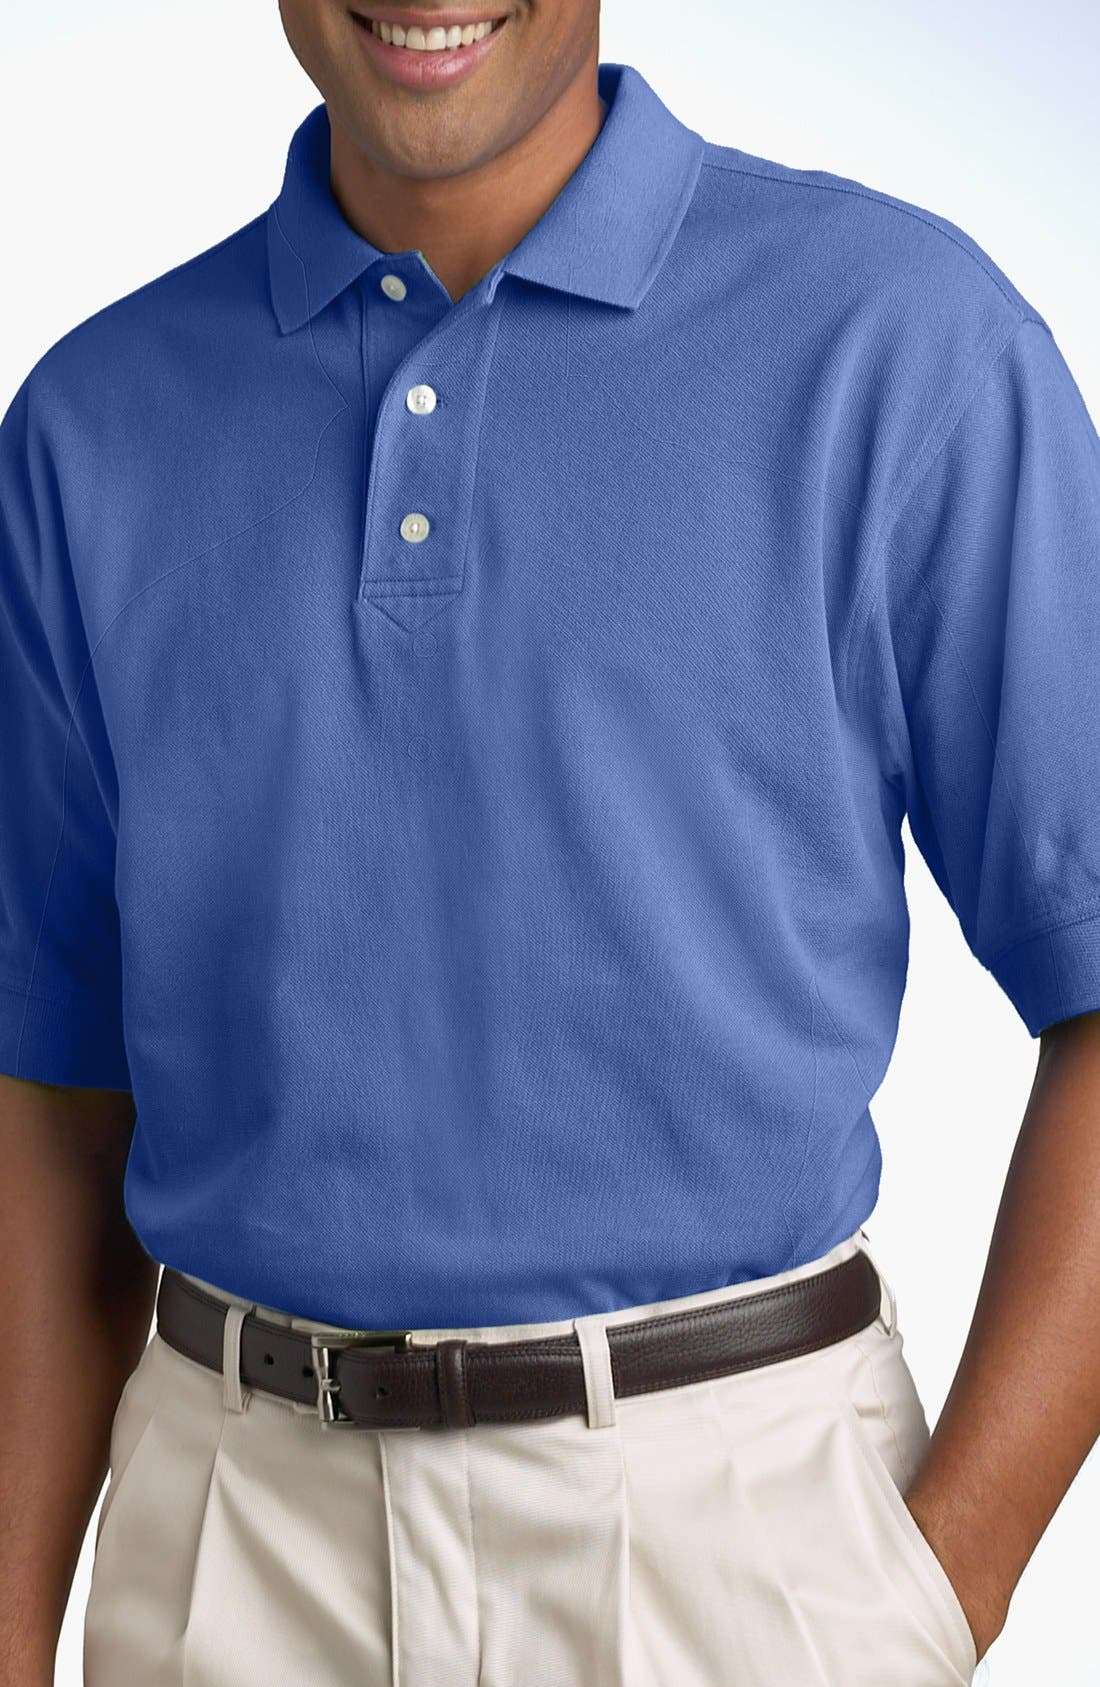 Alternate Image 1 Selected - Cutter & Buck 'Tournament' Polo (Big & Tall)